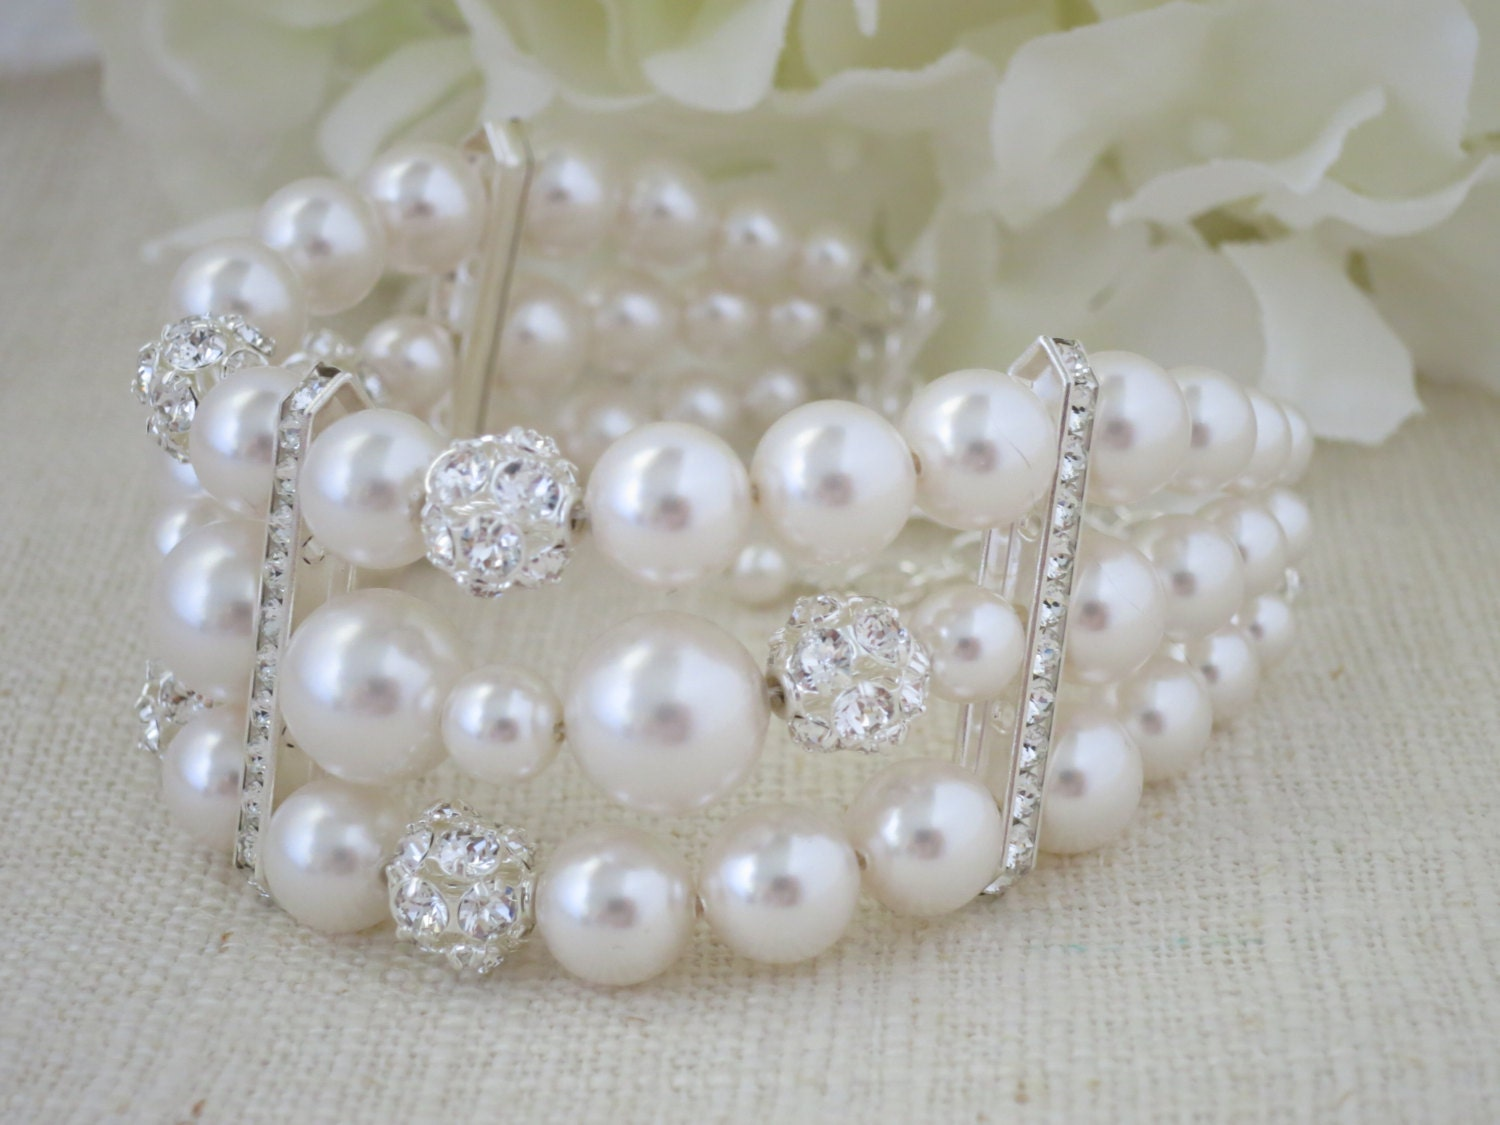 Multi strand pearl bridal cuff, Swarovski rhinestone and pearl wedding bracelet